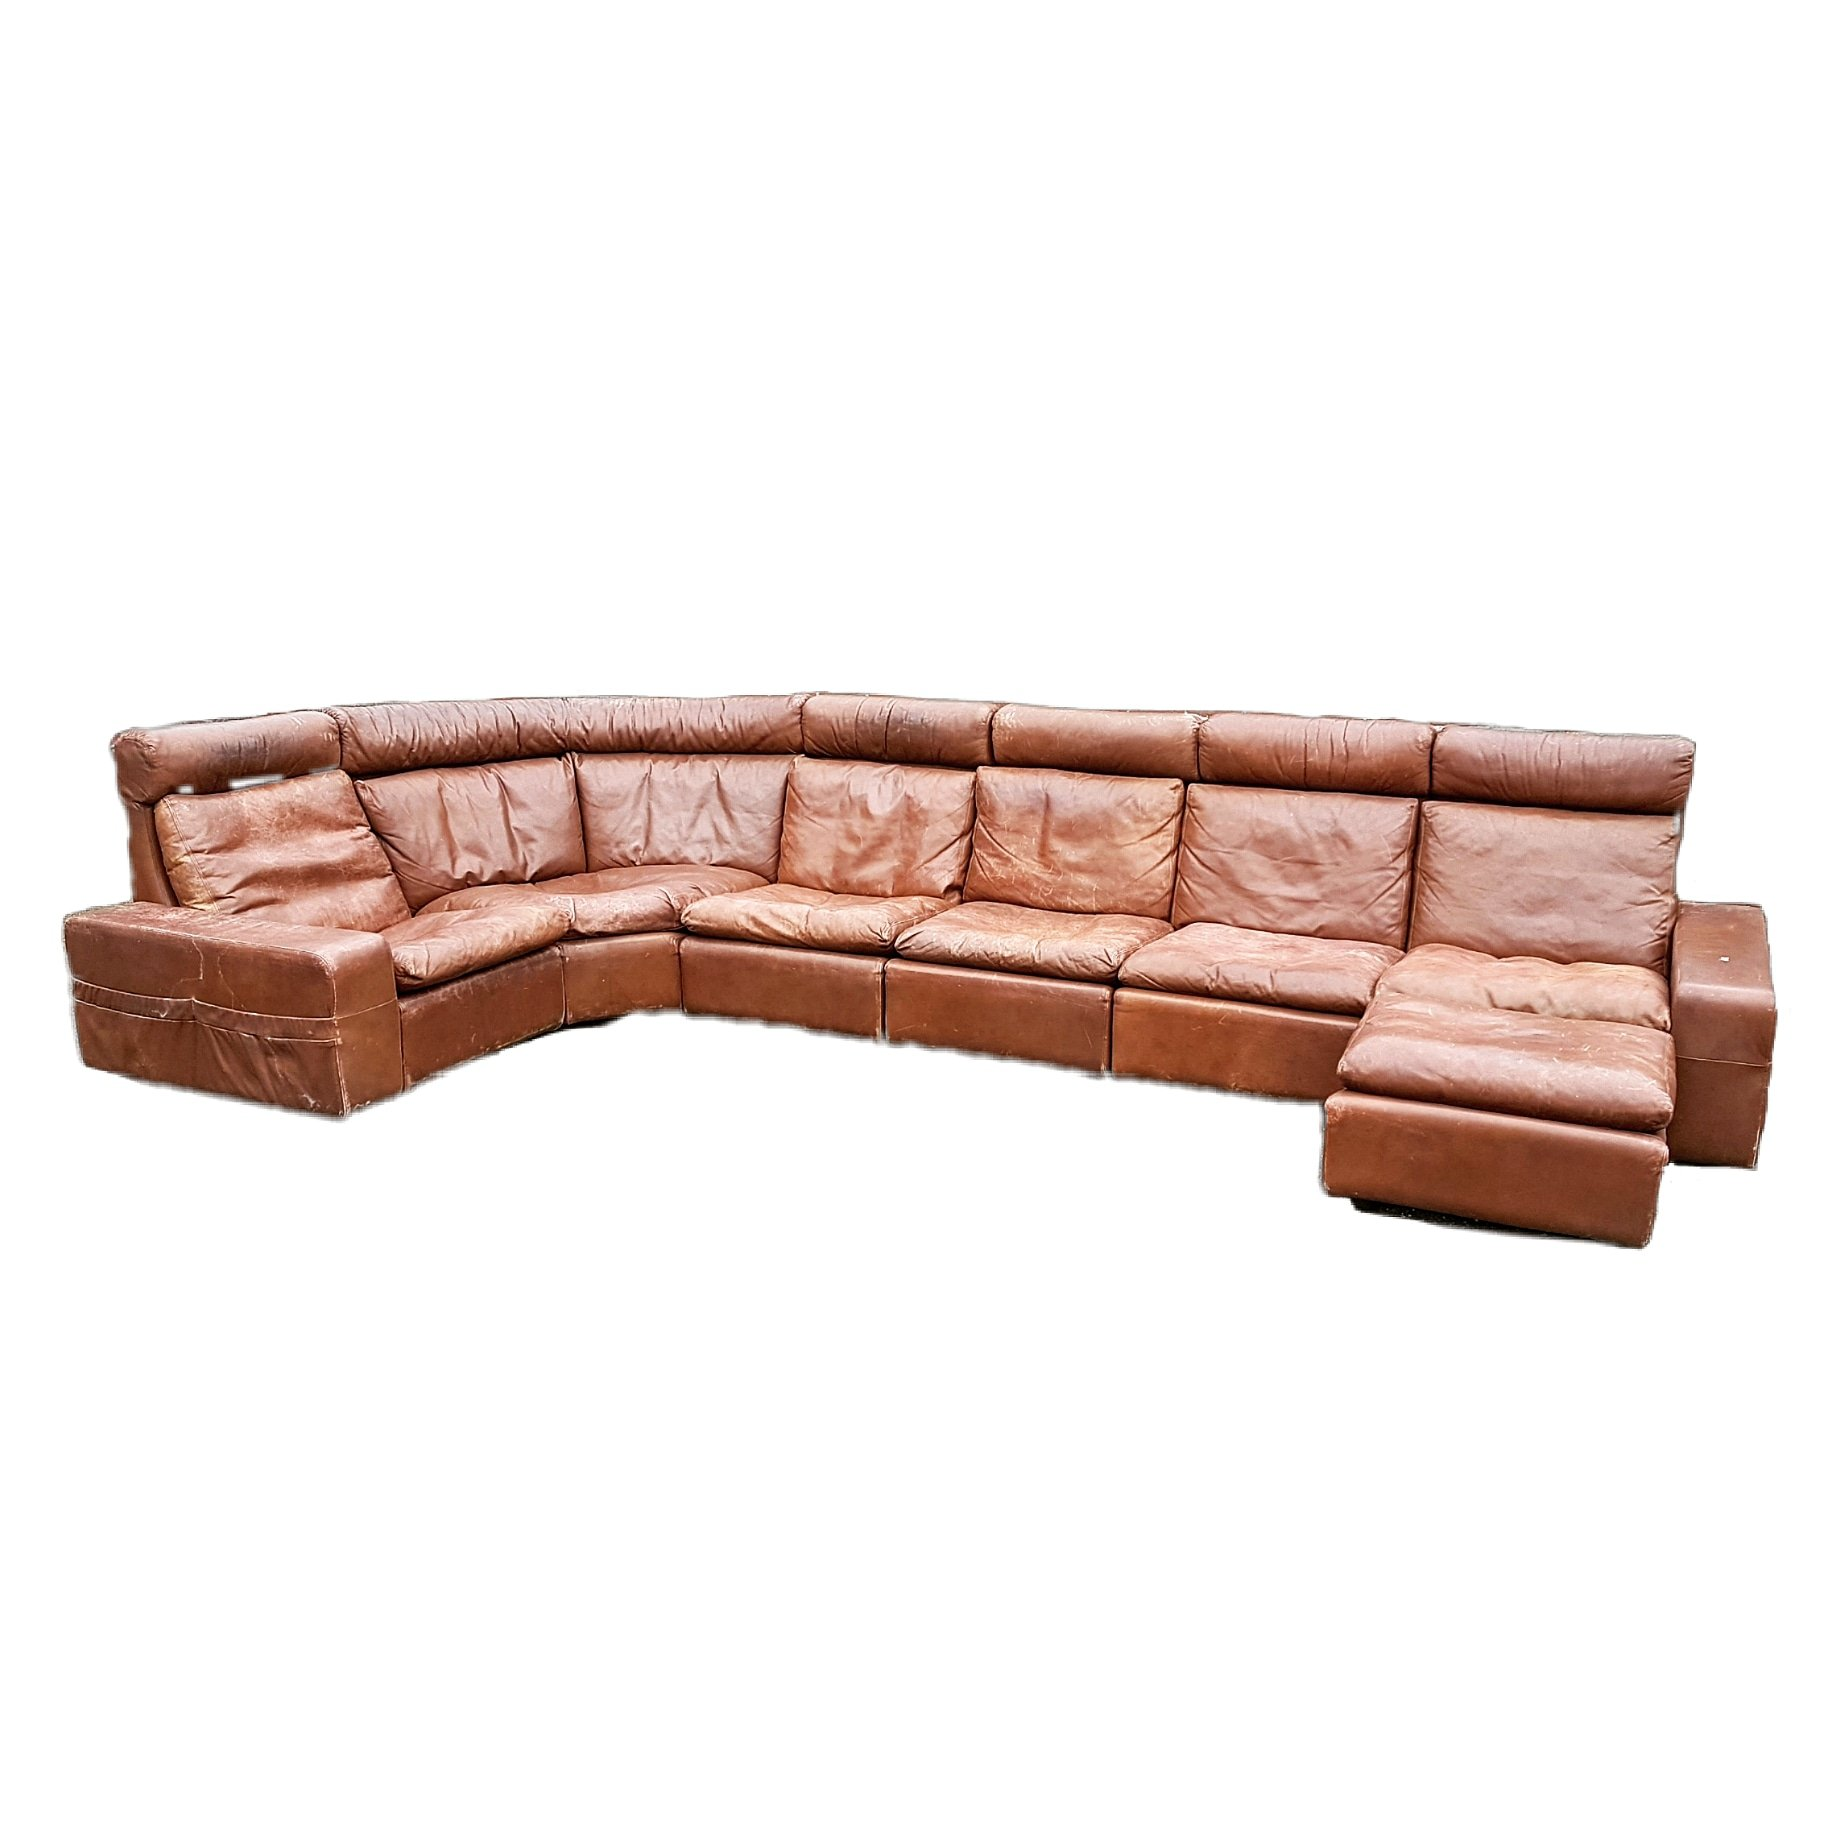 Excellent Xxl Leather Modular Corner Sofa With Ottoman 1970S 99785 Ncnpc Chair Design For Home Ncnpcorg